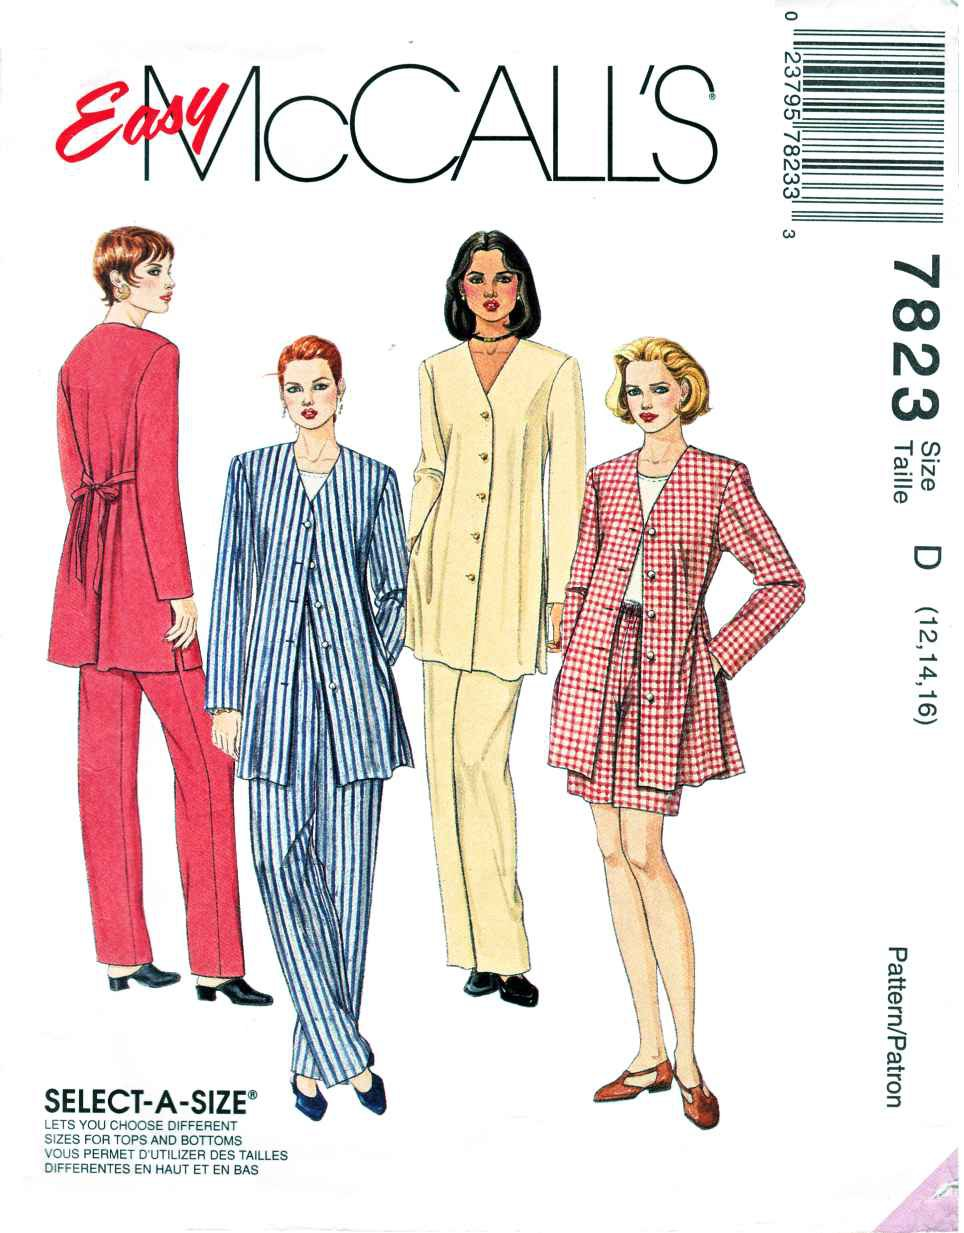 McCalls Sewing Pattern 7823 Misses Size 10-14 Top Unlined Jacket Pants Shorts